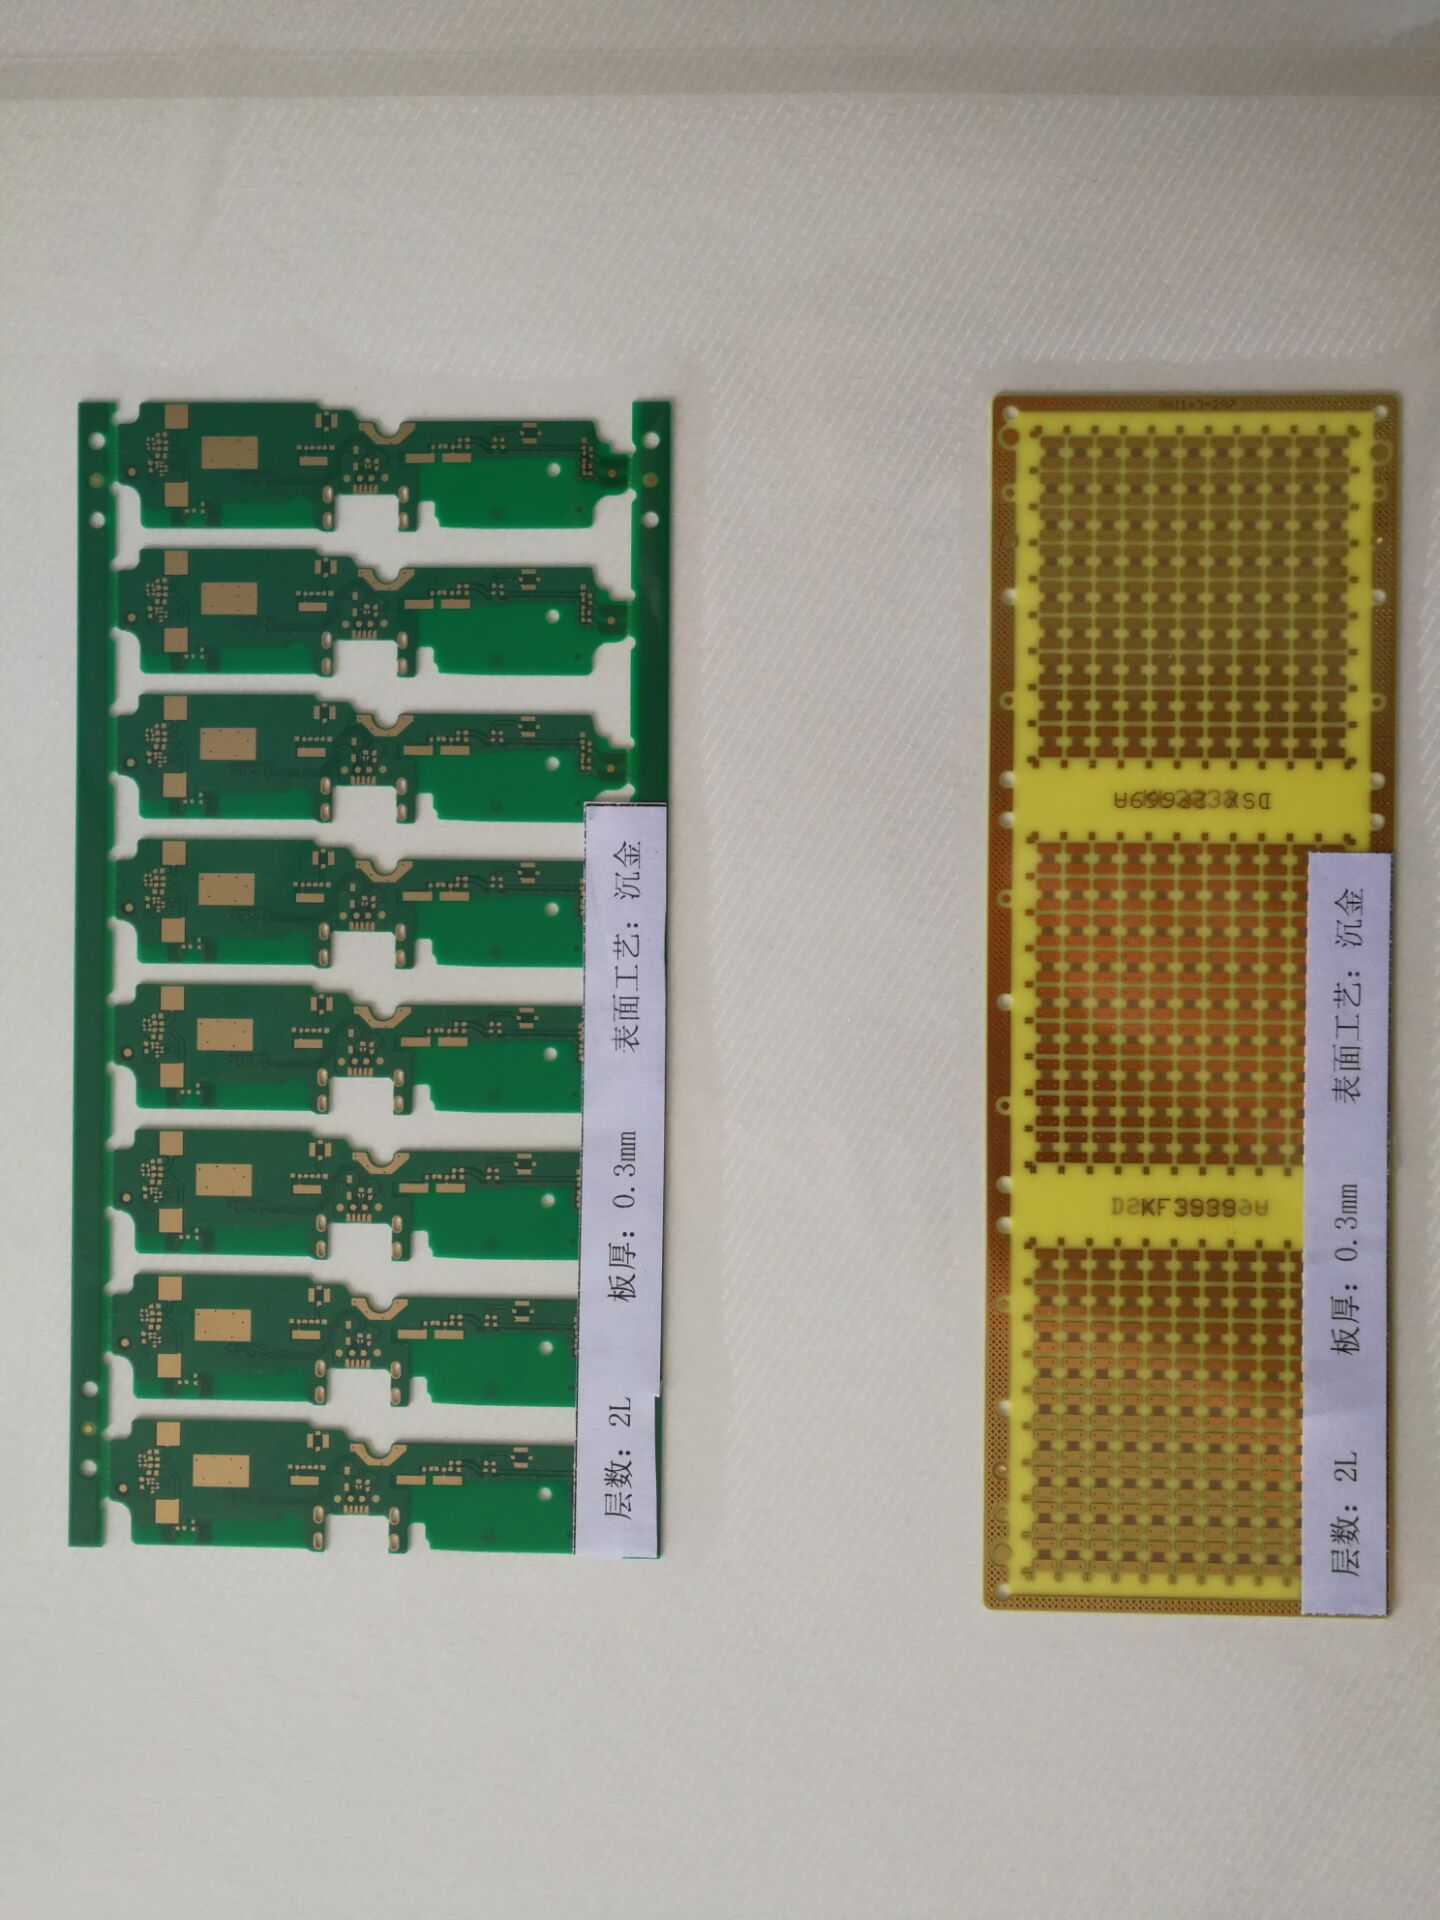 Extra Thin Printed Circuit Board 02mm 03mm Fr4 Pcb Ultra Boards Finished Assembly 1